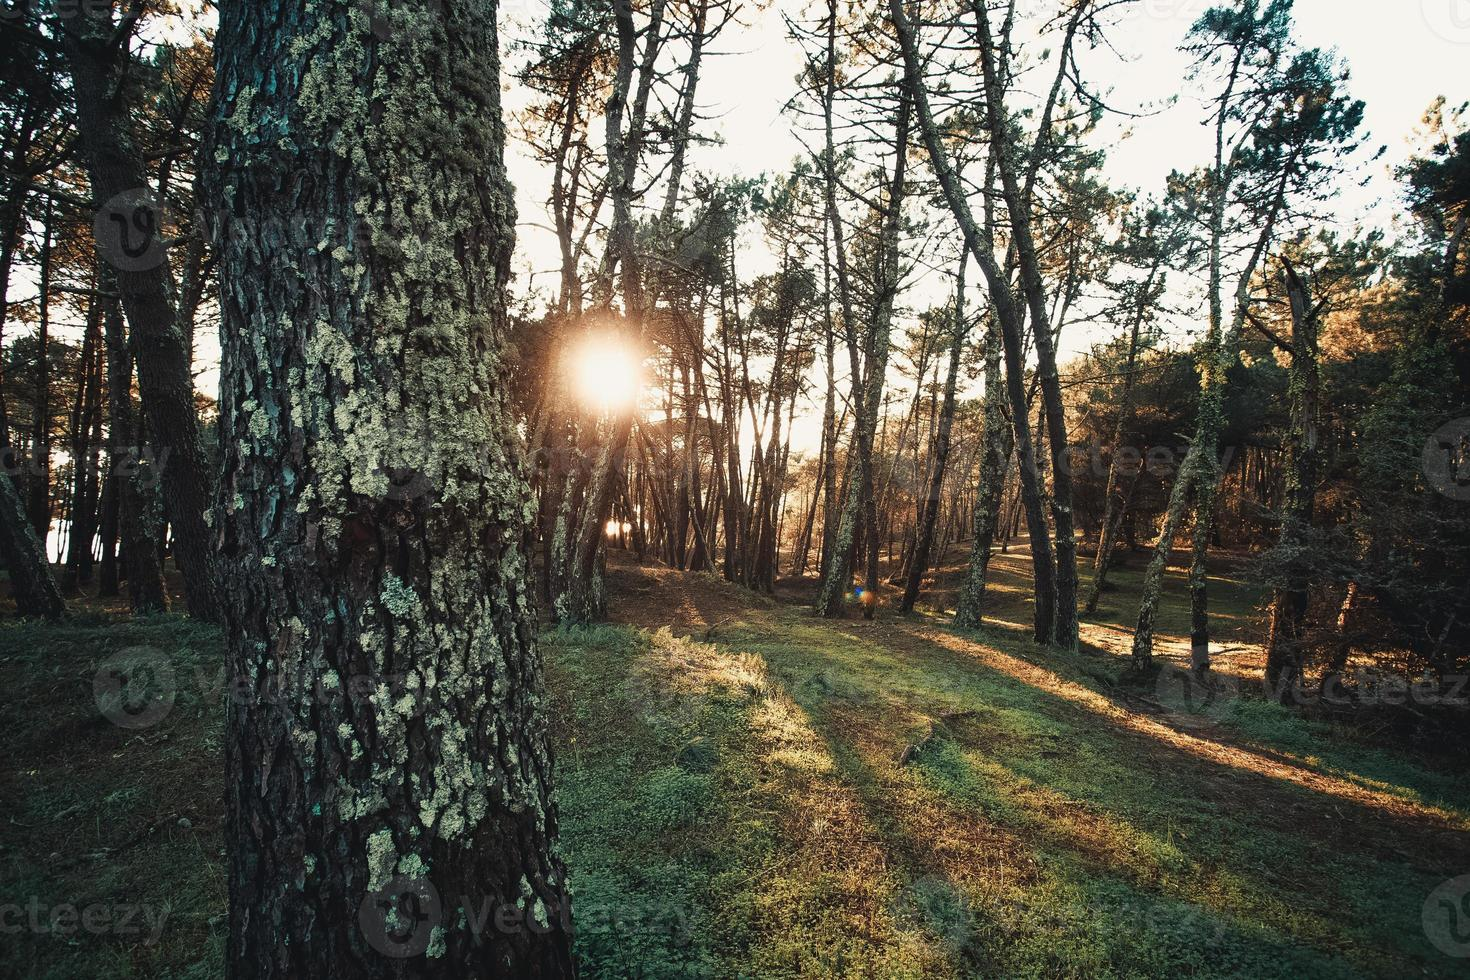 Forest during a sunset photo